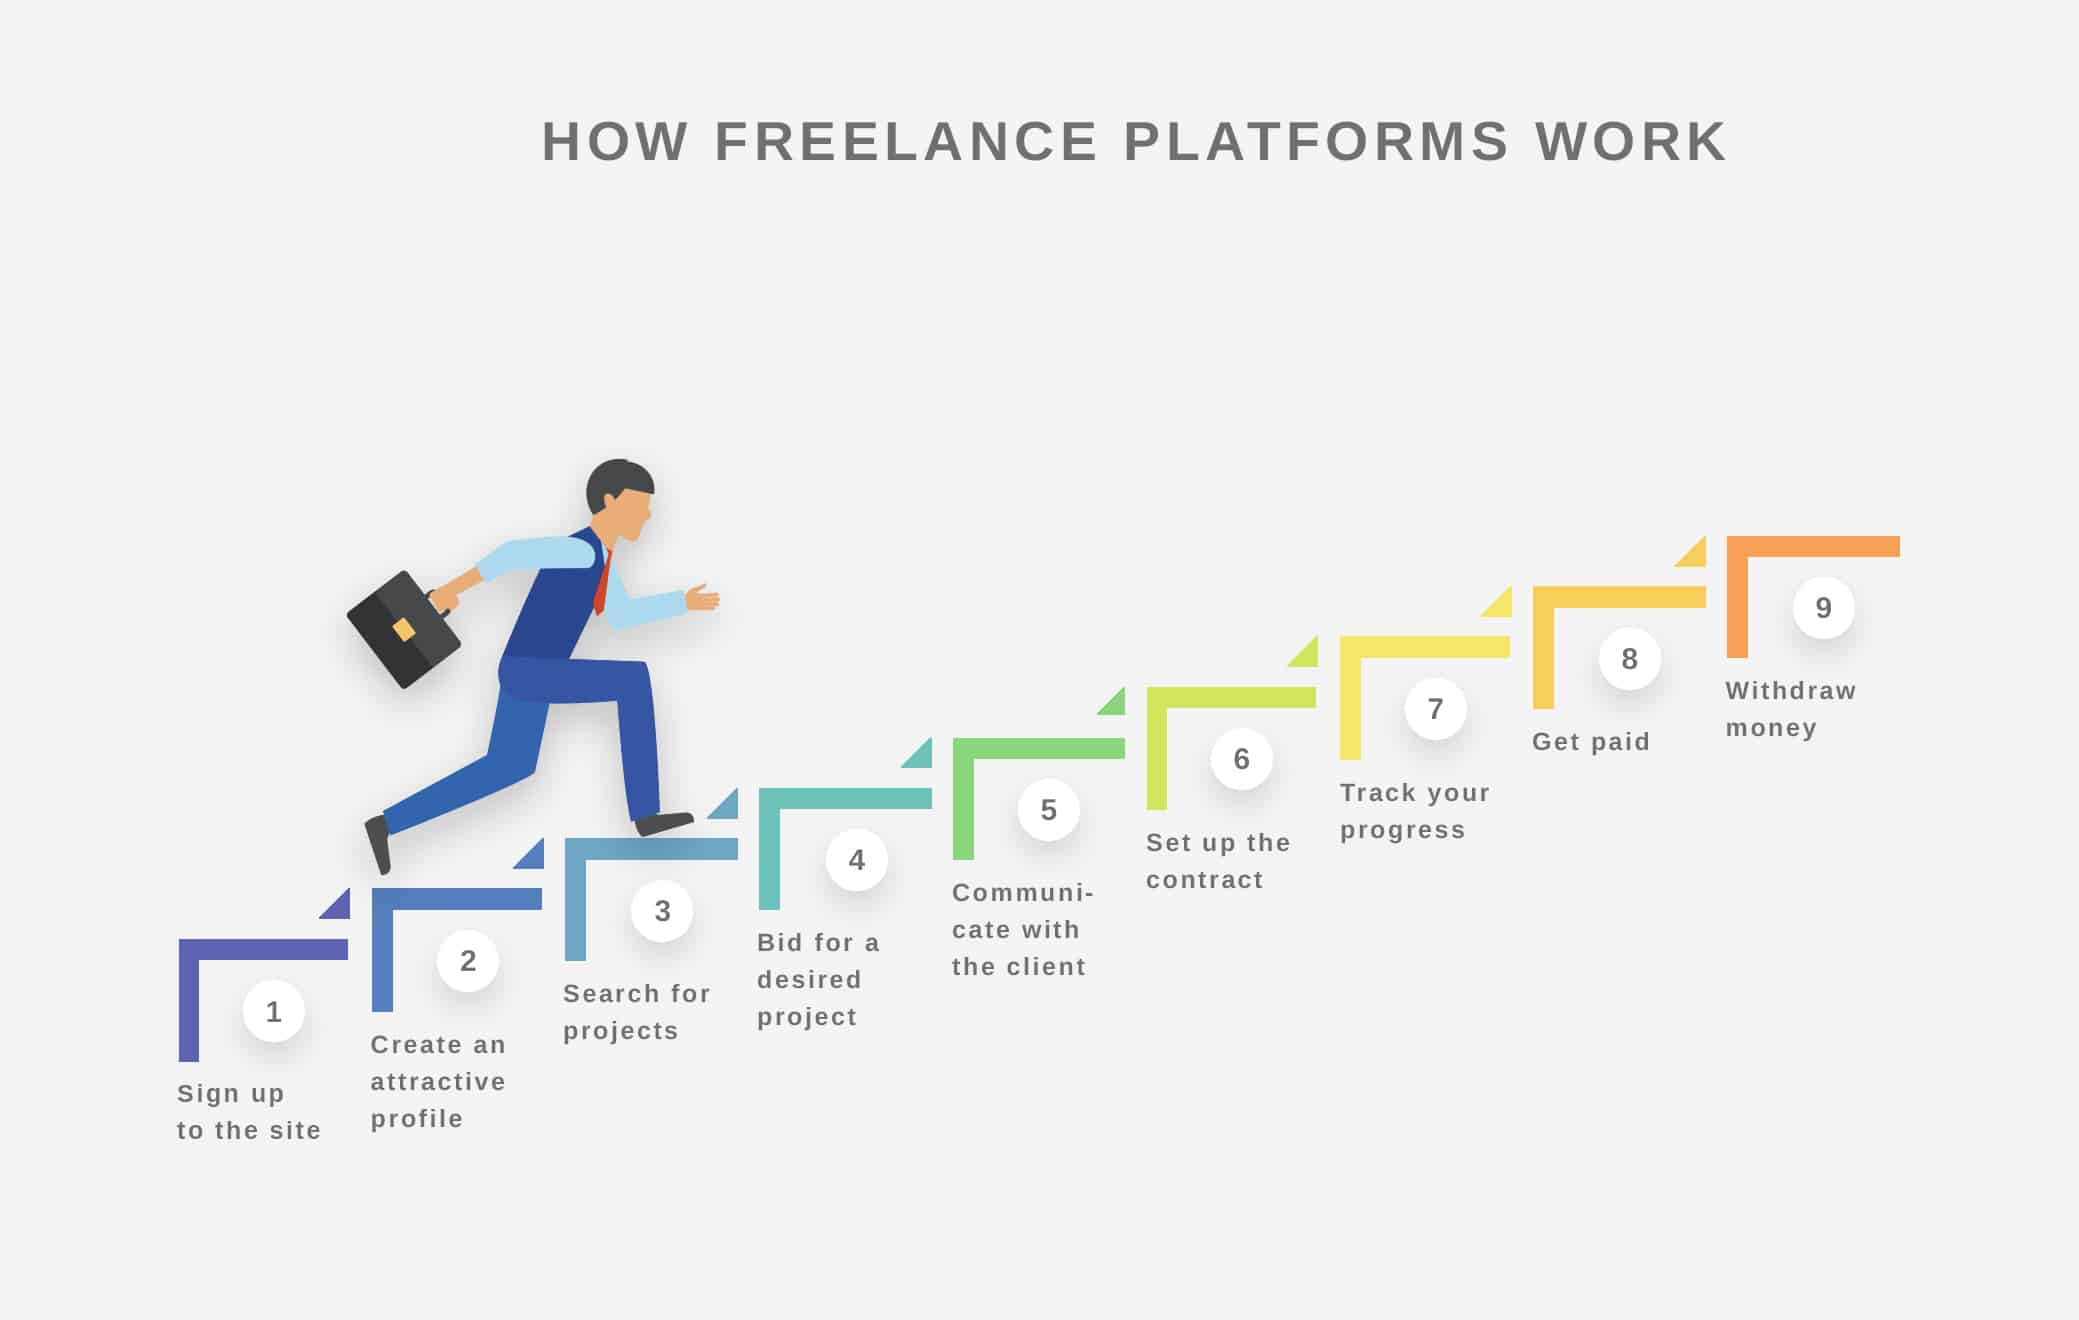 How Freelance Platforms Work